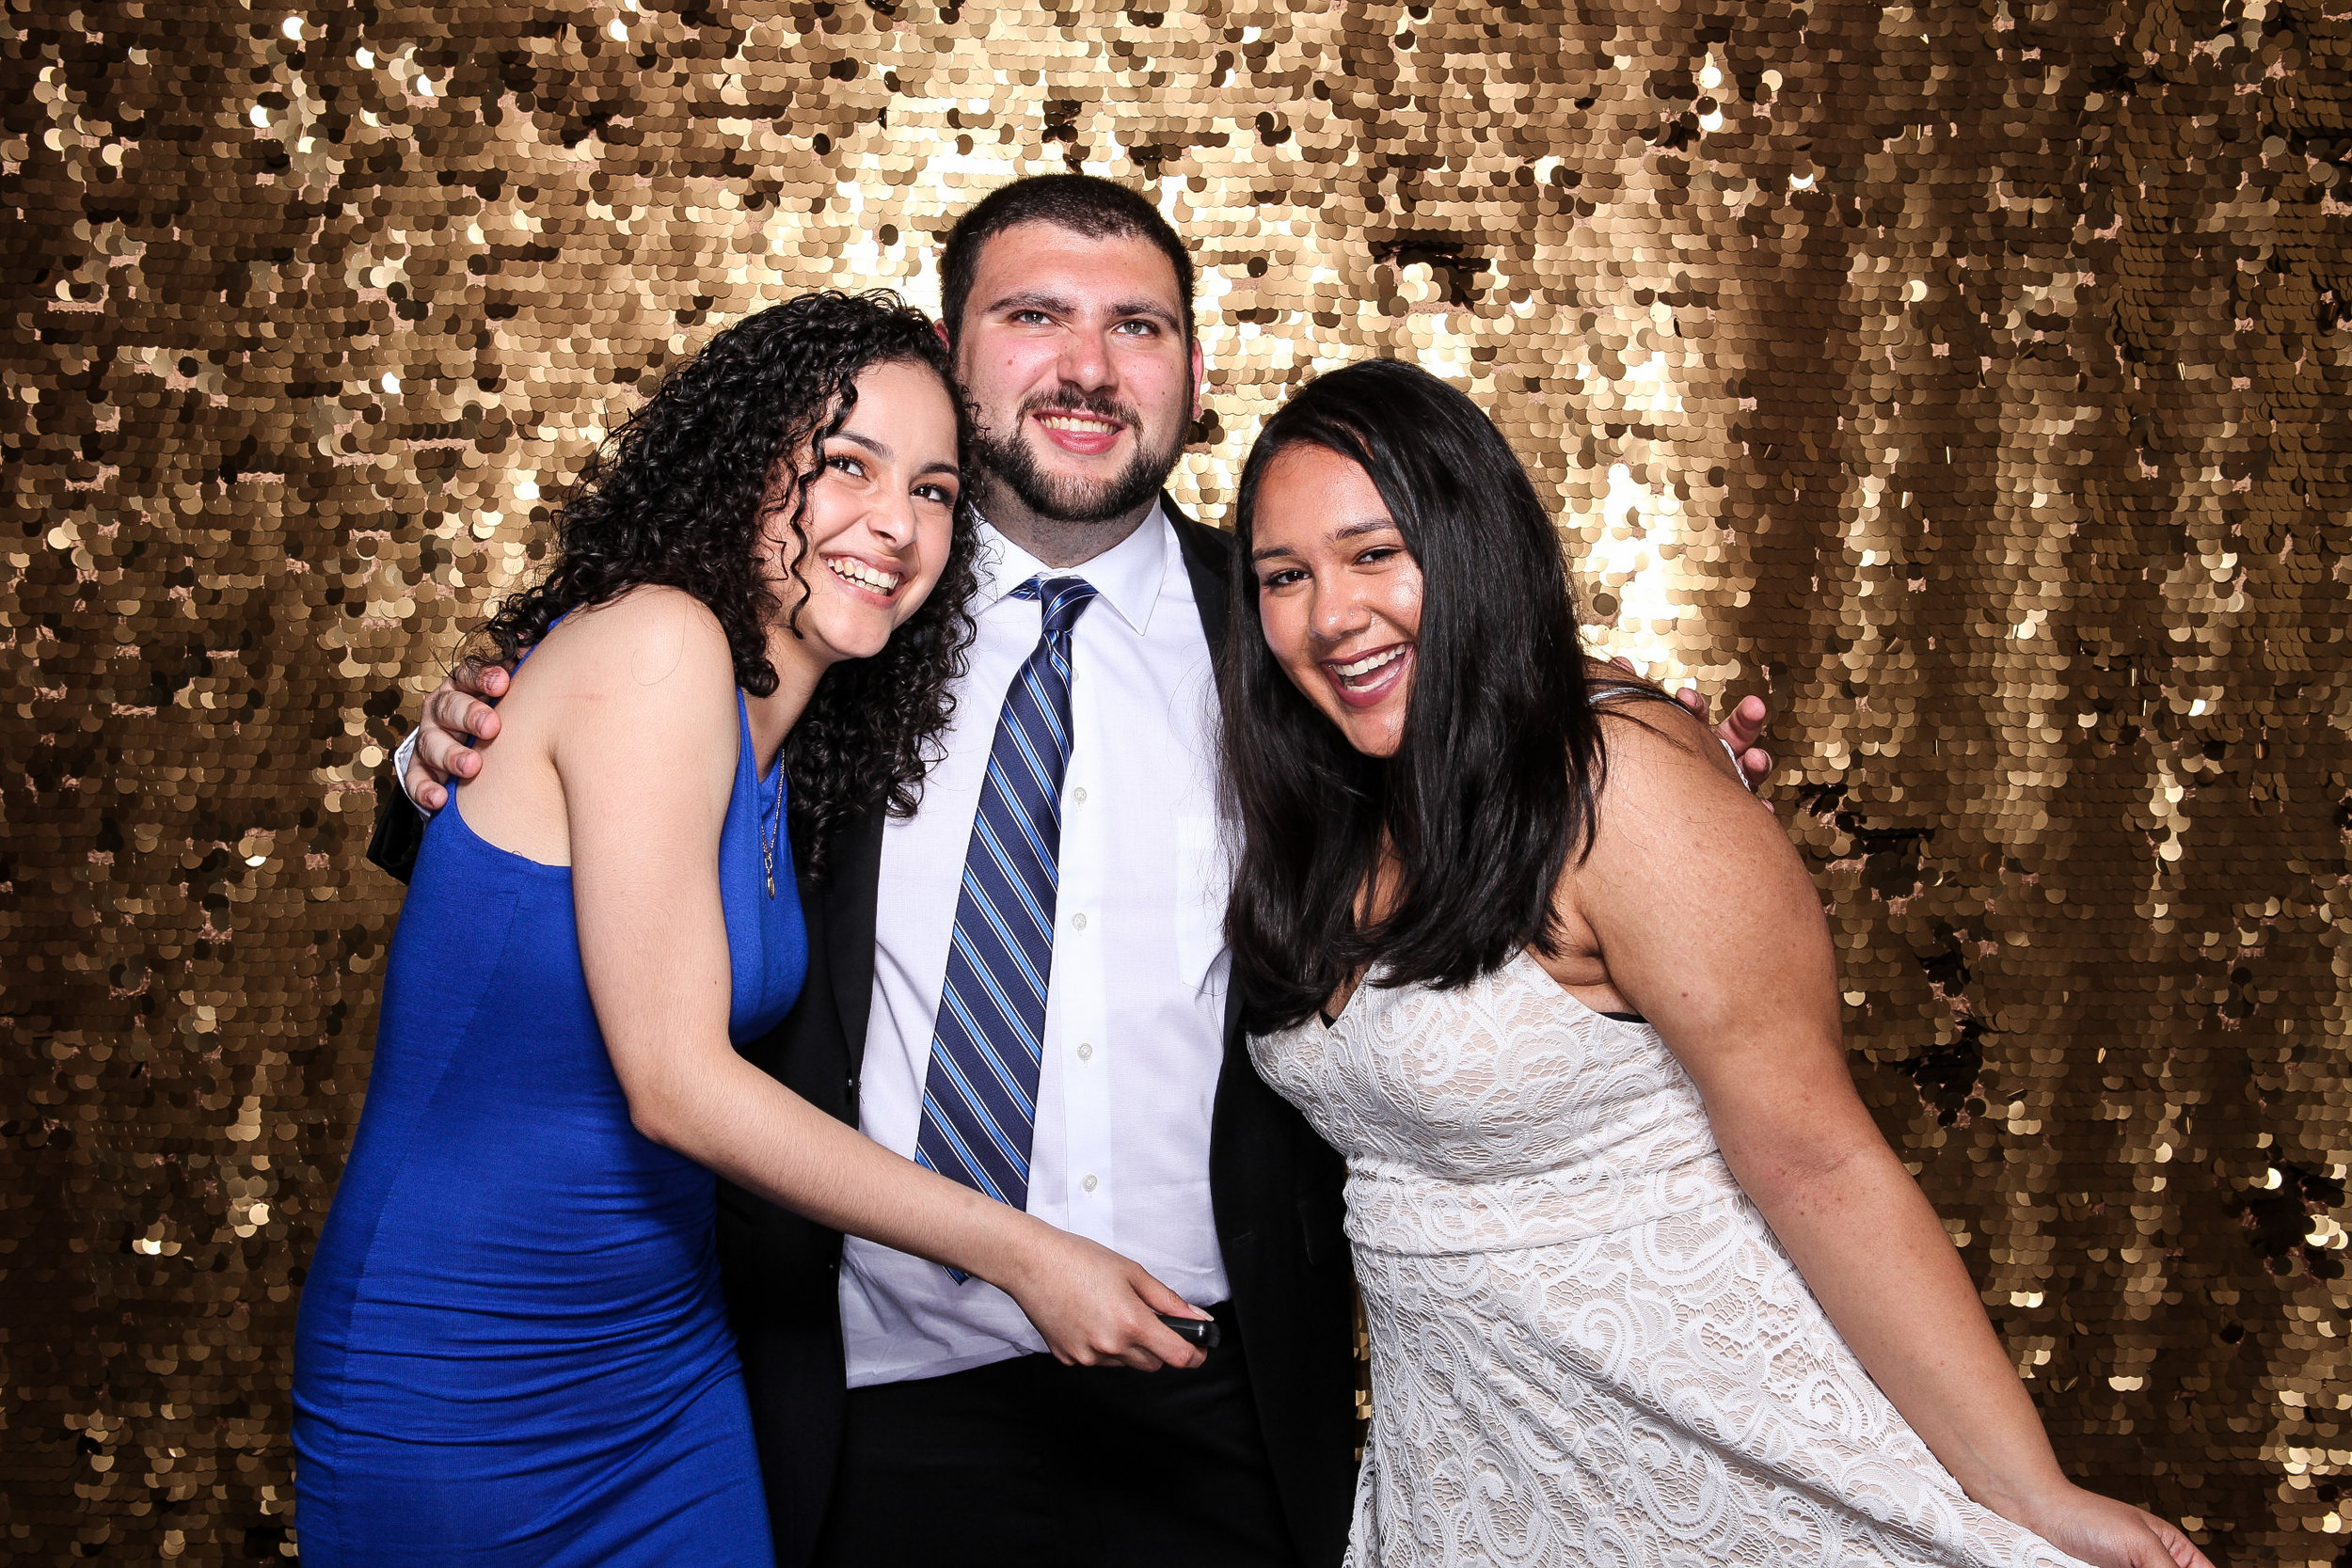 20190503_Adelphi_Senior_Formal-390.jpg